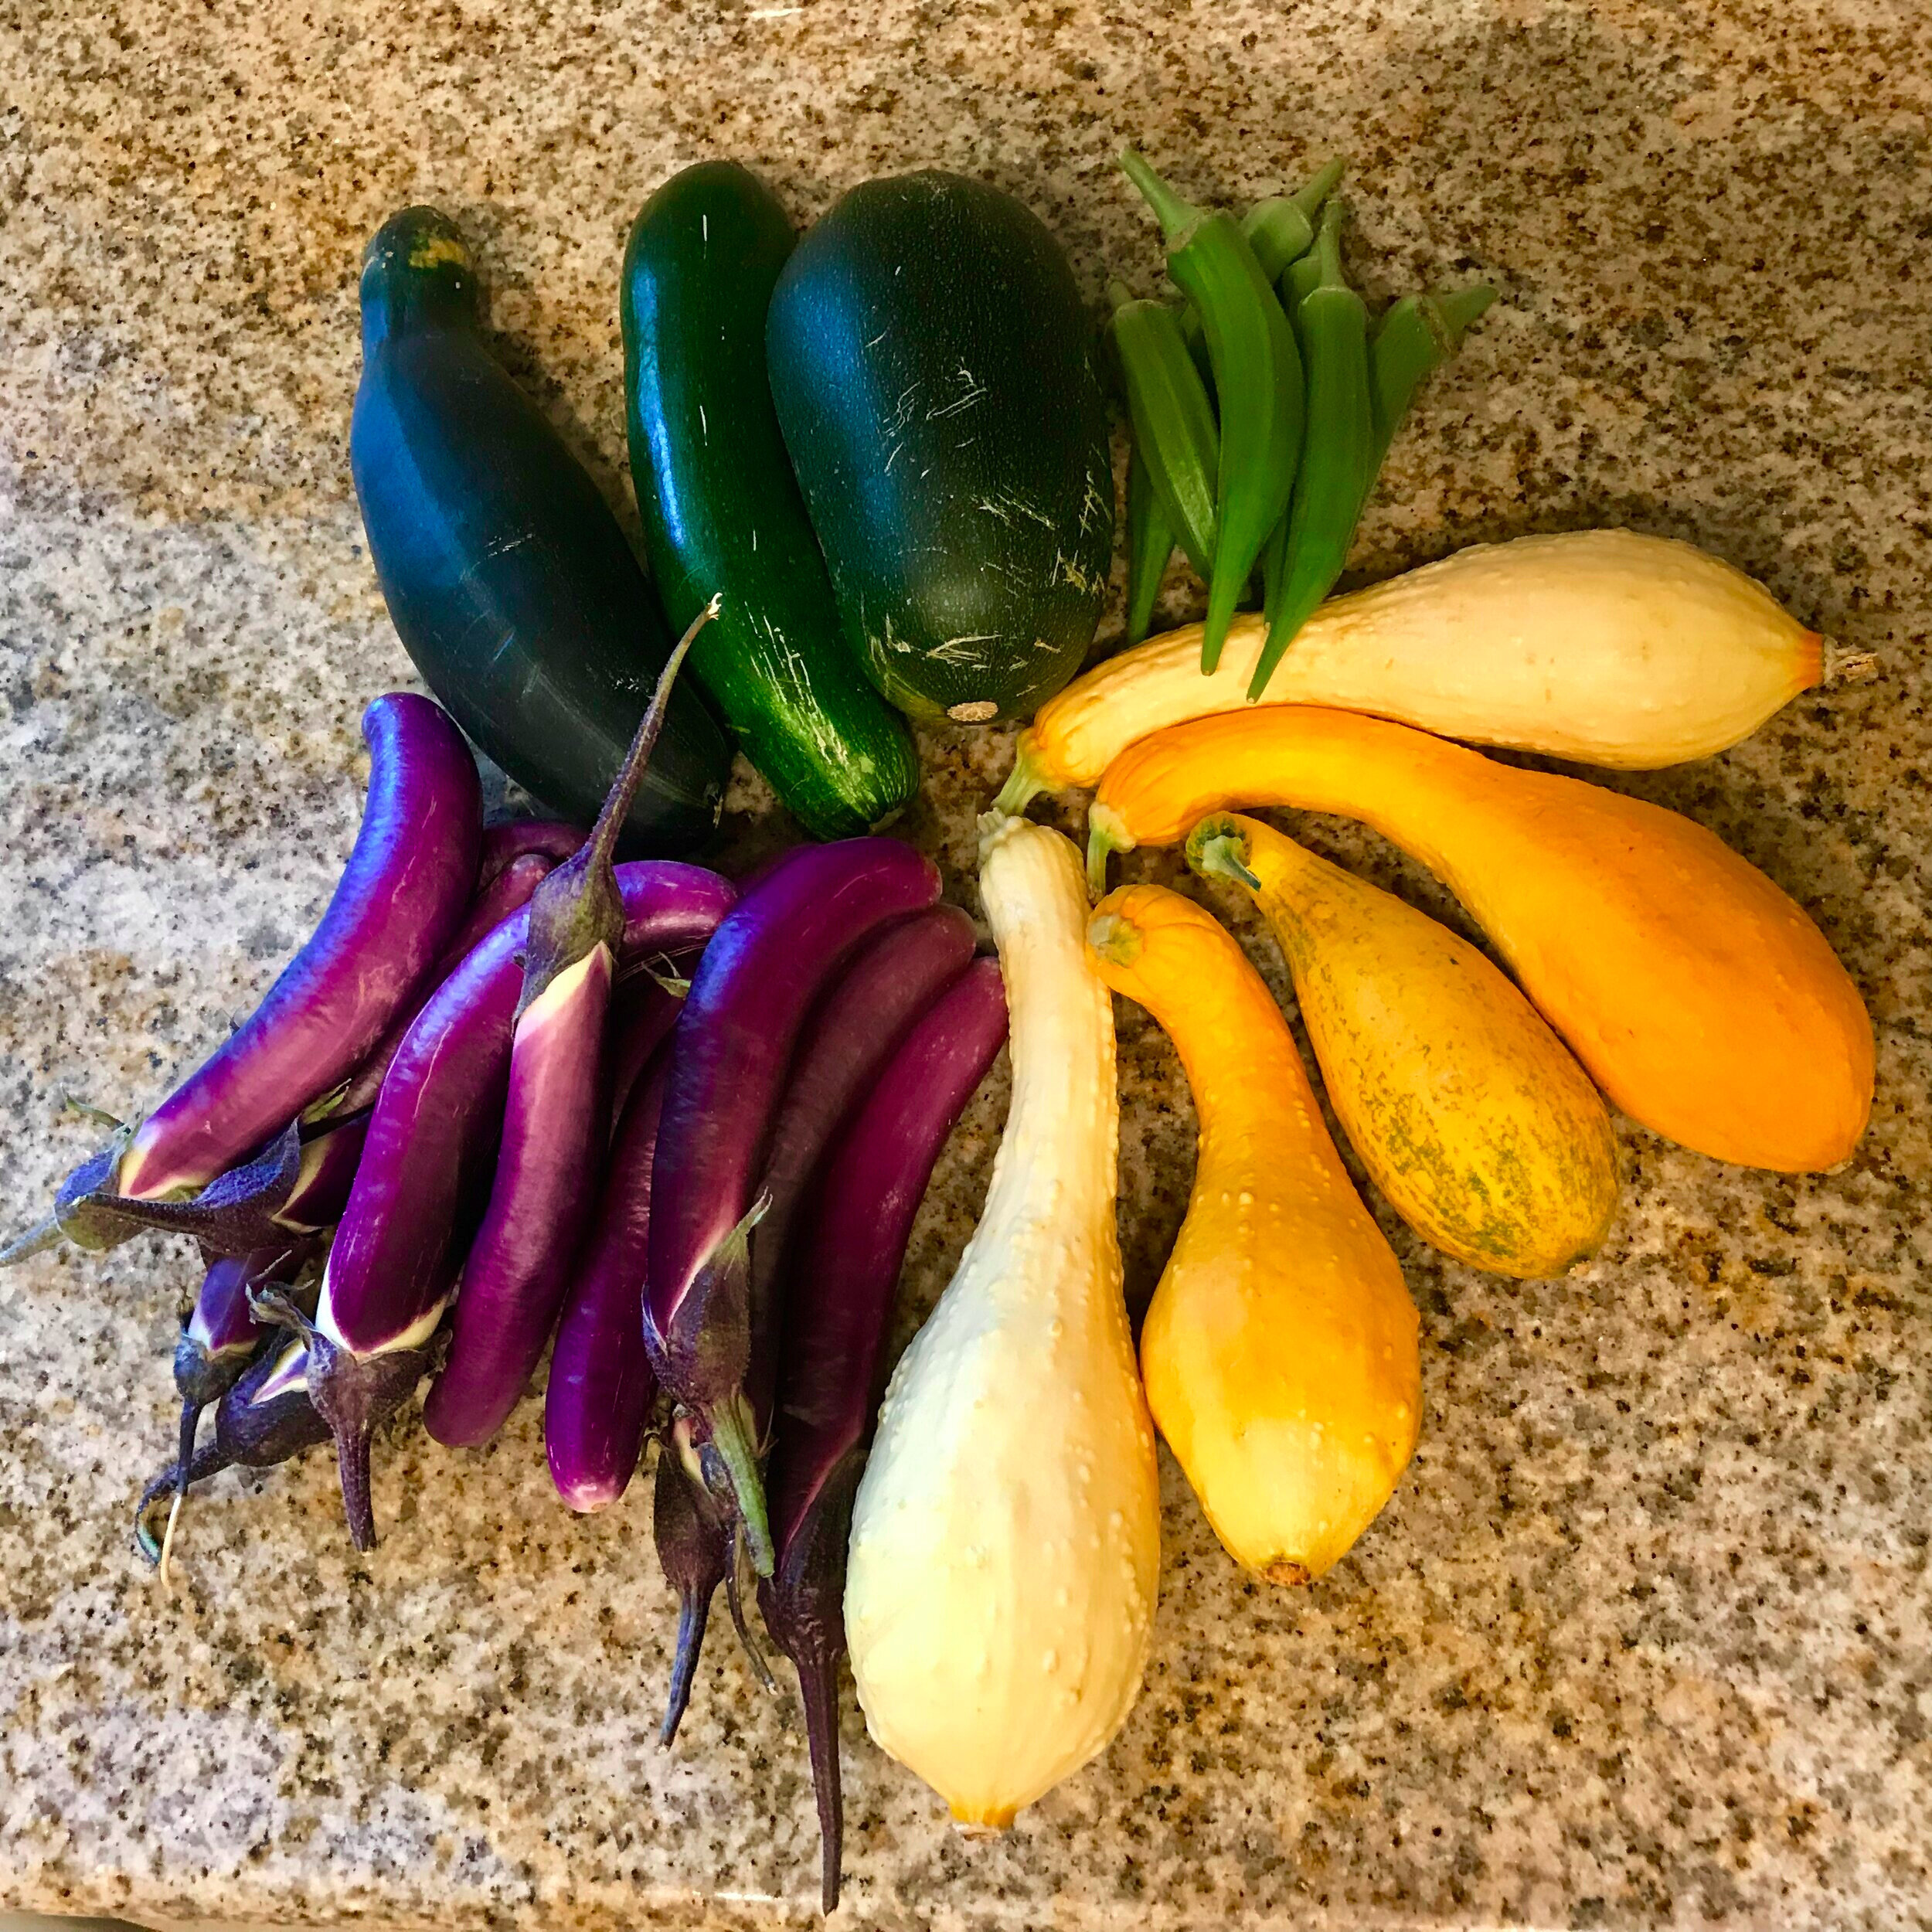 Looks like dinner is gonna be something with squash, eggplant, and okra…